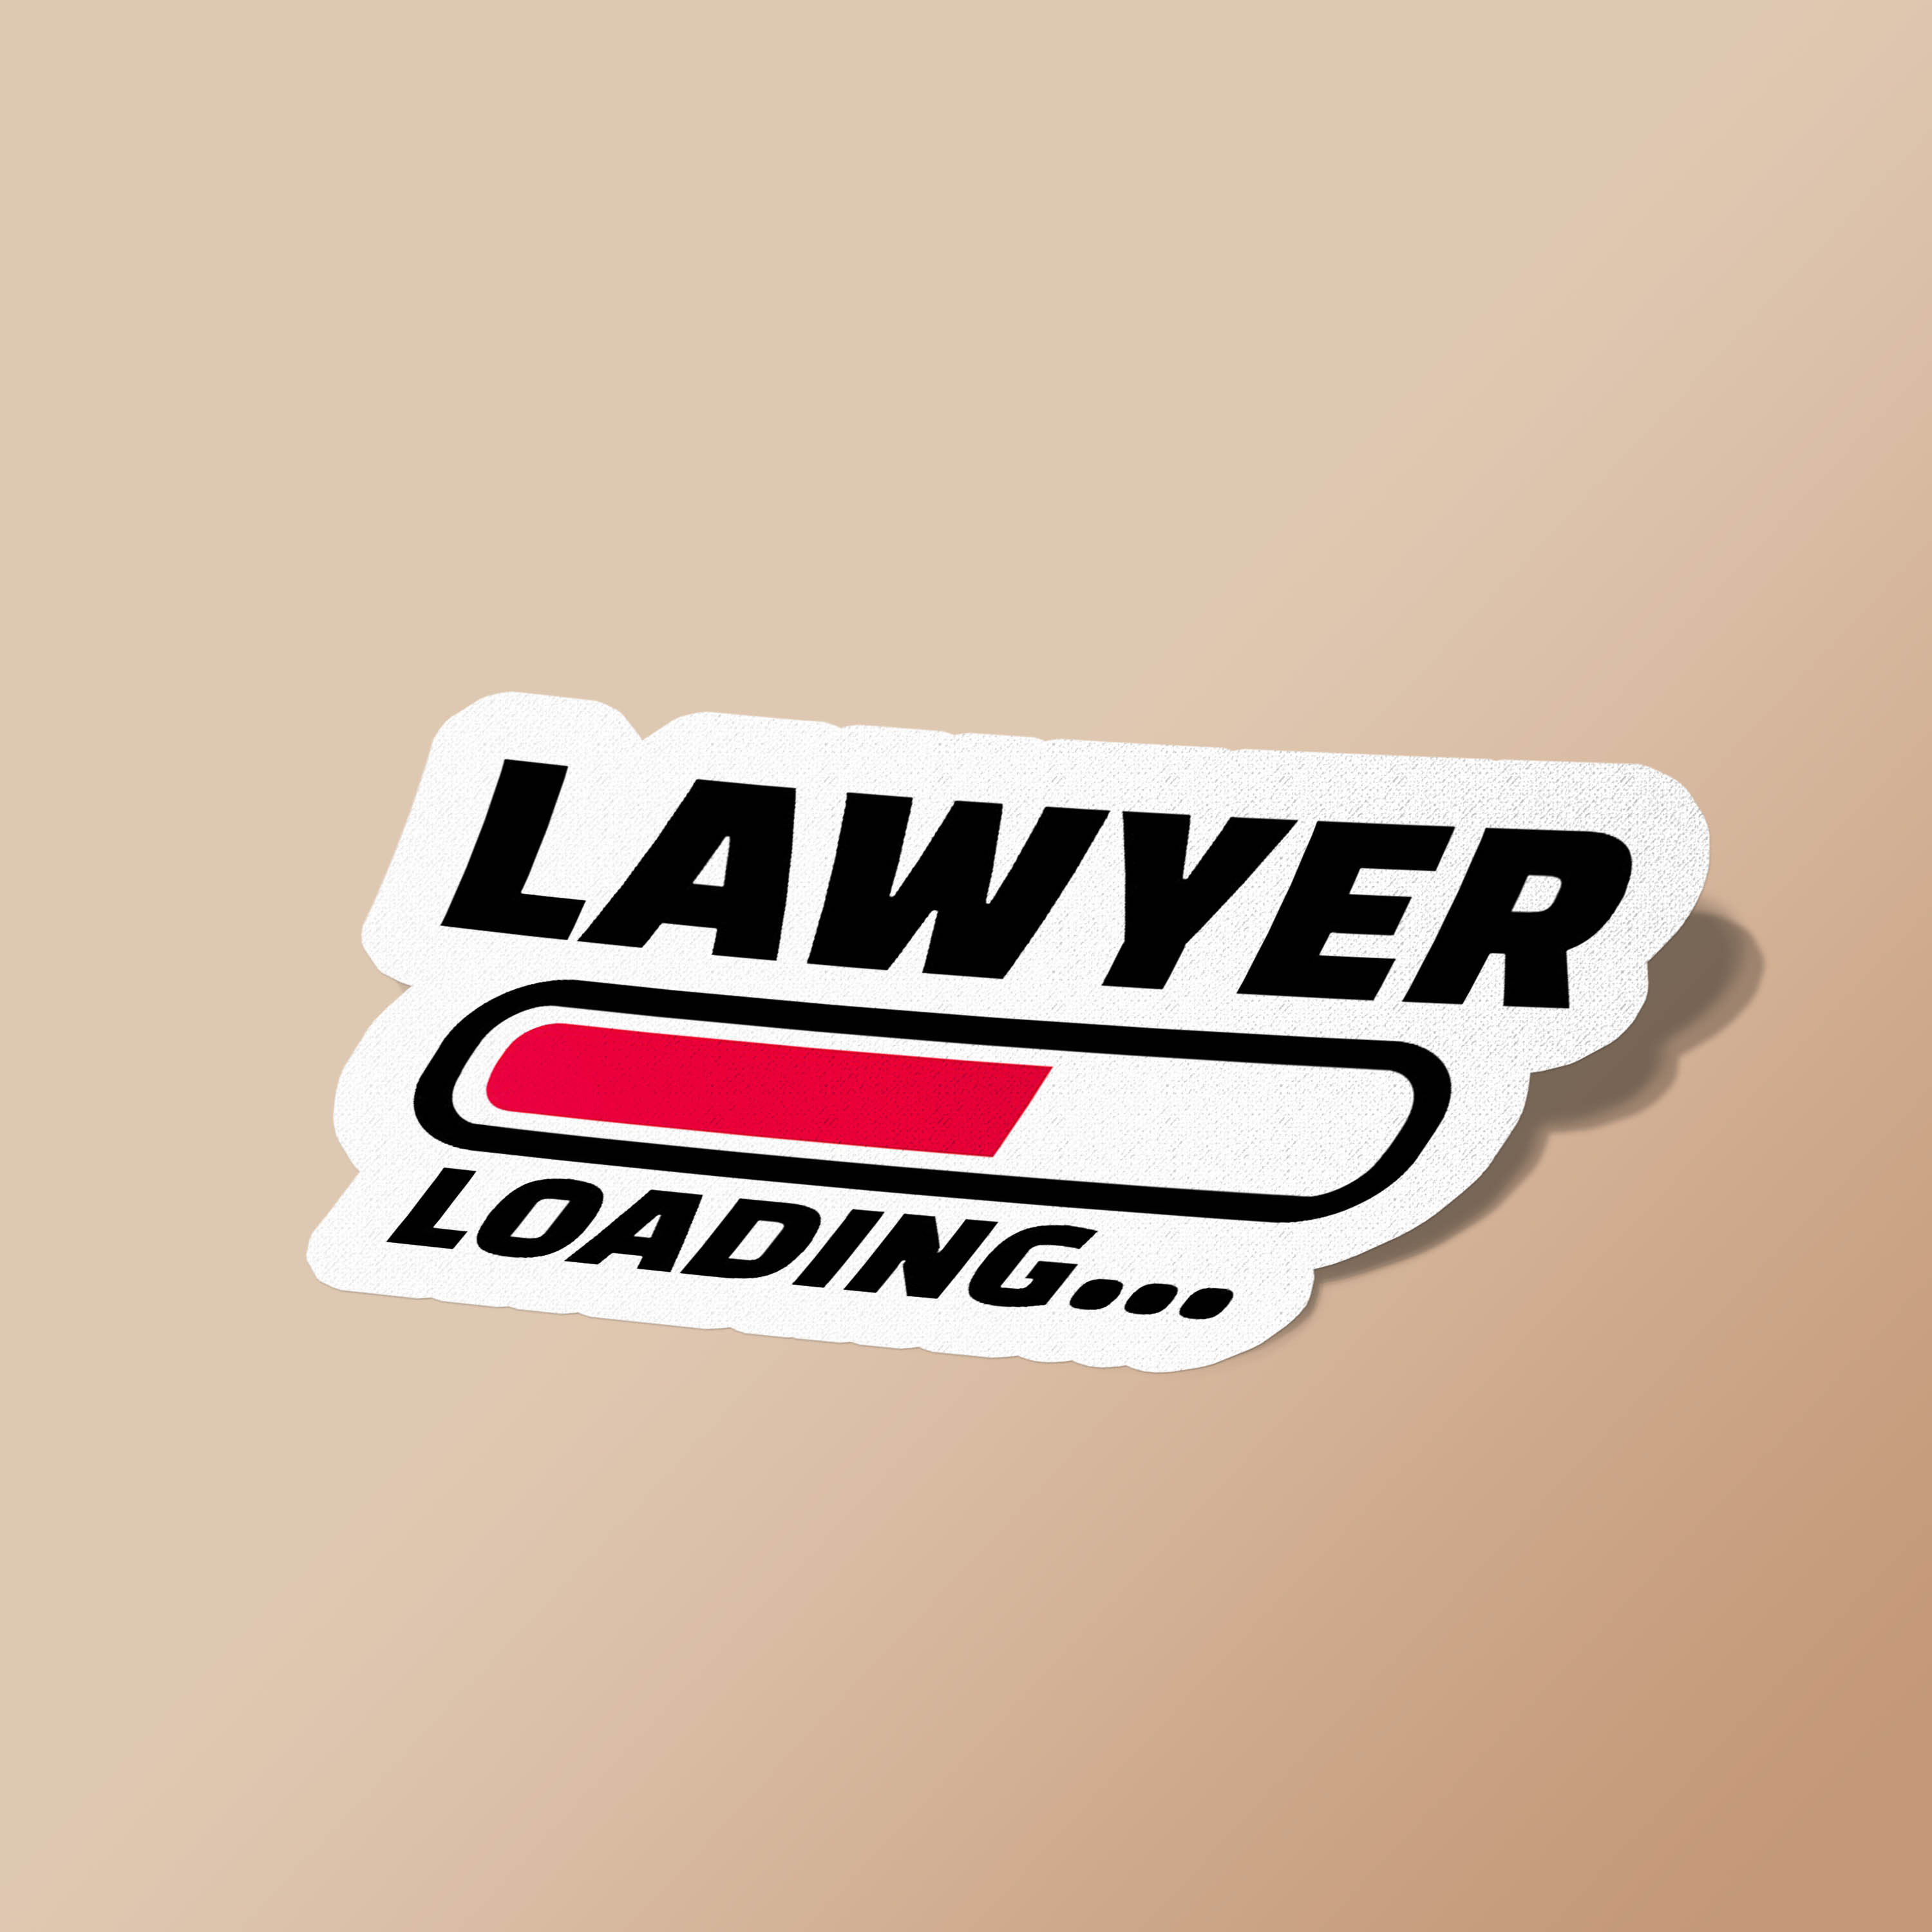 Lawyer loading